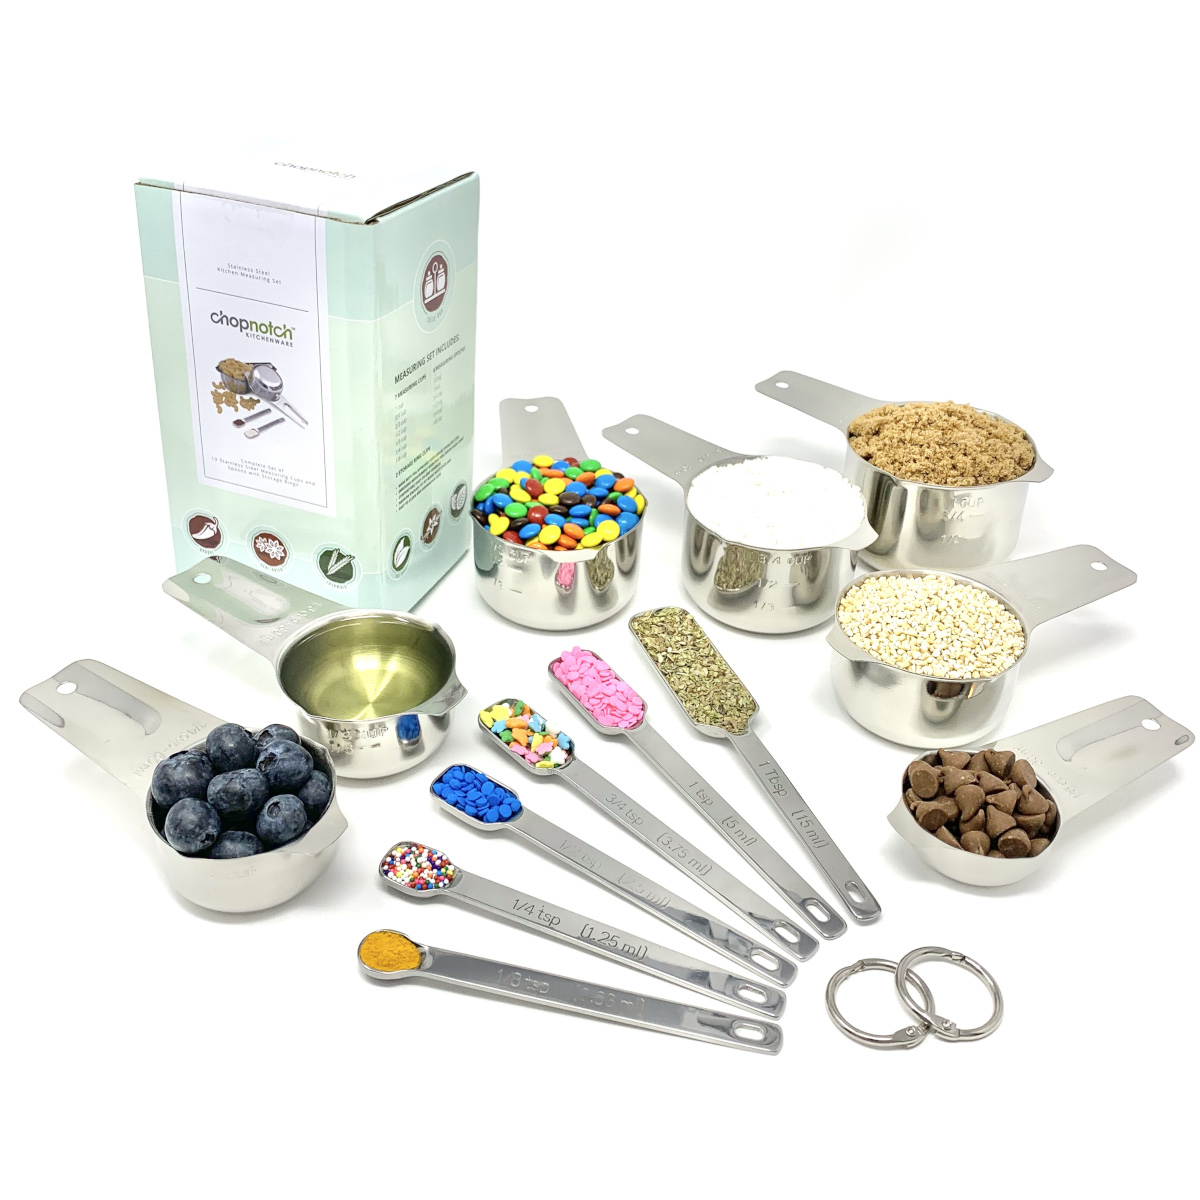 The measuring cups and spoons spread out and filled with ingredients.